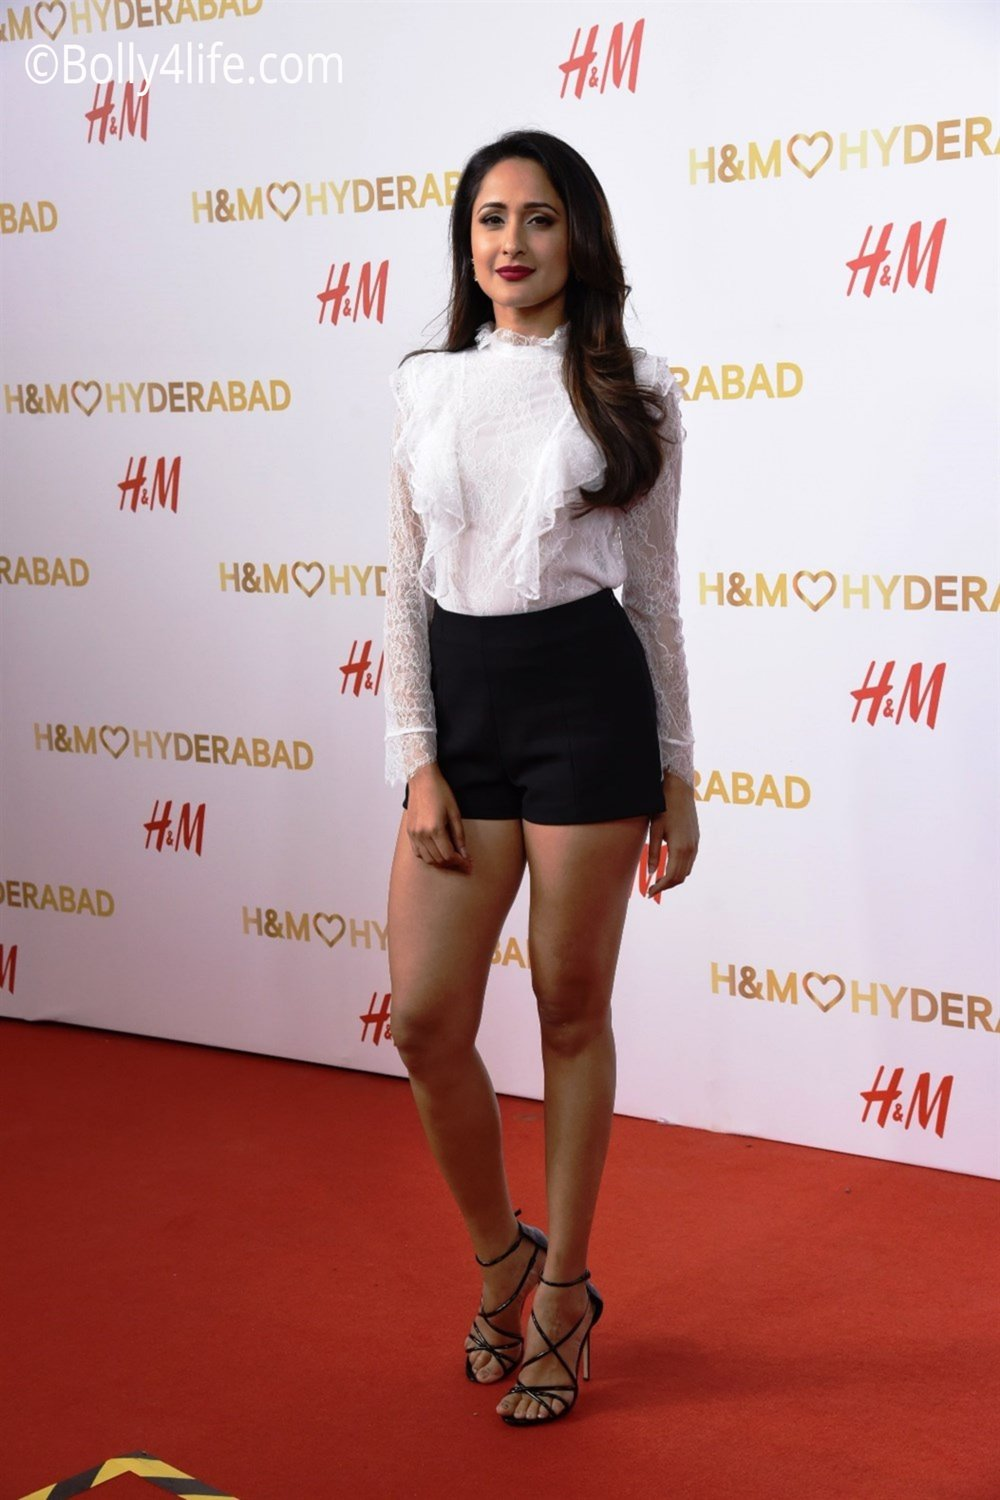 hm-hyderabad-grand-opening-at-inorbit-mall-583d330.jpg